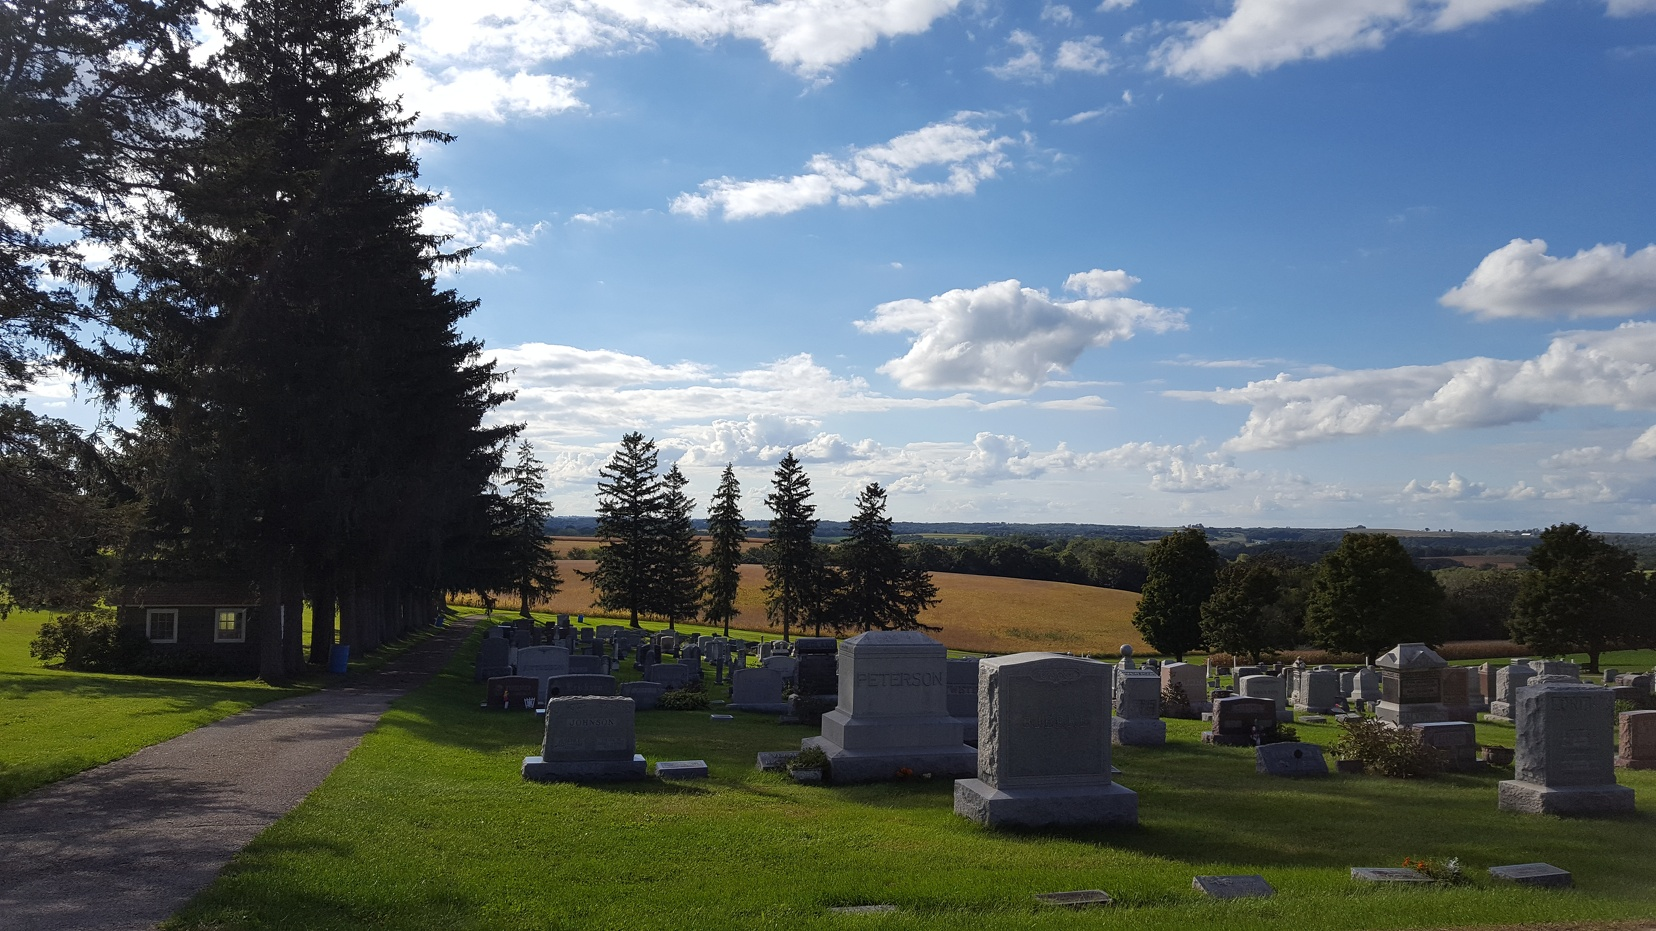 Scenic valleys and cemeteries? These are a few of my favorite things...